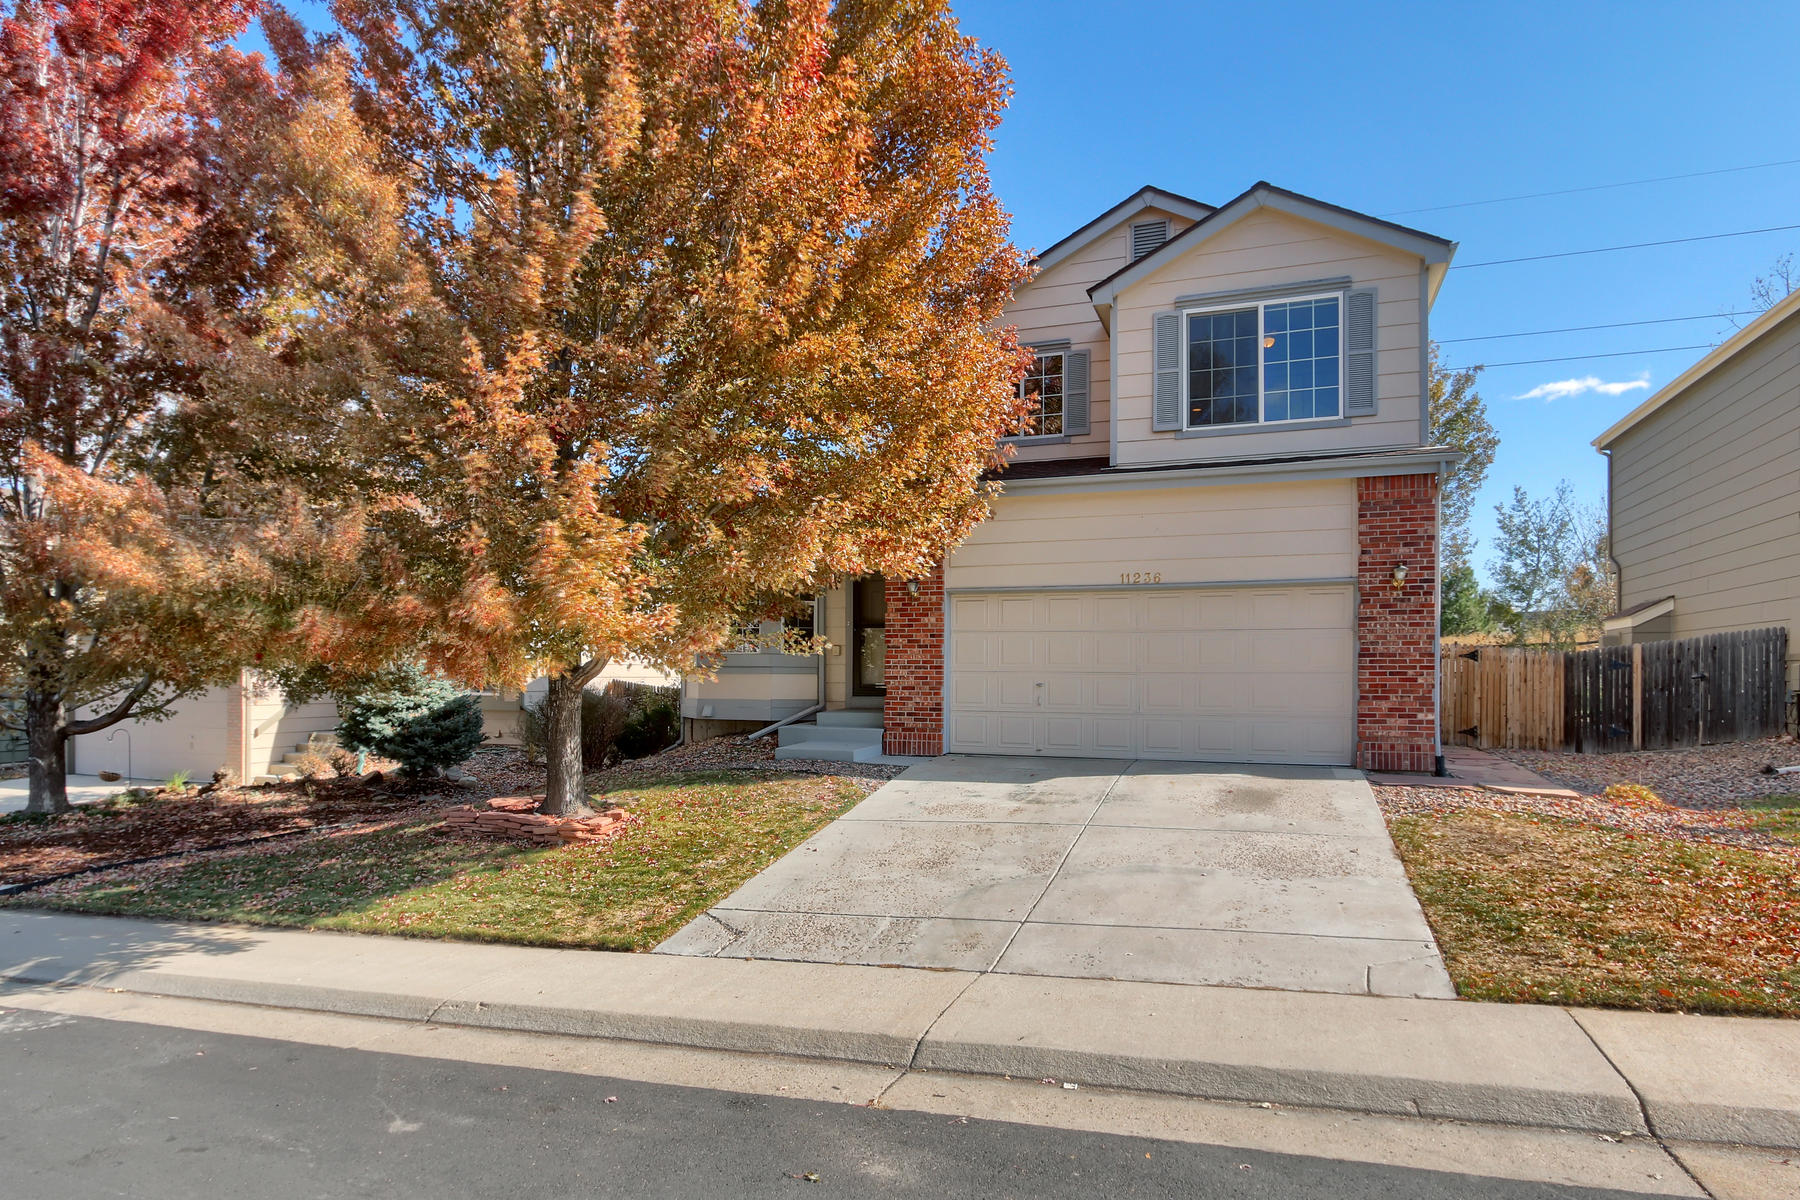 Single Family Homes for Sale at You will love this 2-story home backing to open space and a trail system 11236 Rodeo Cir Parker, Colorado 80138 United States